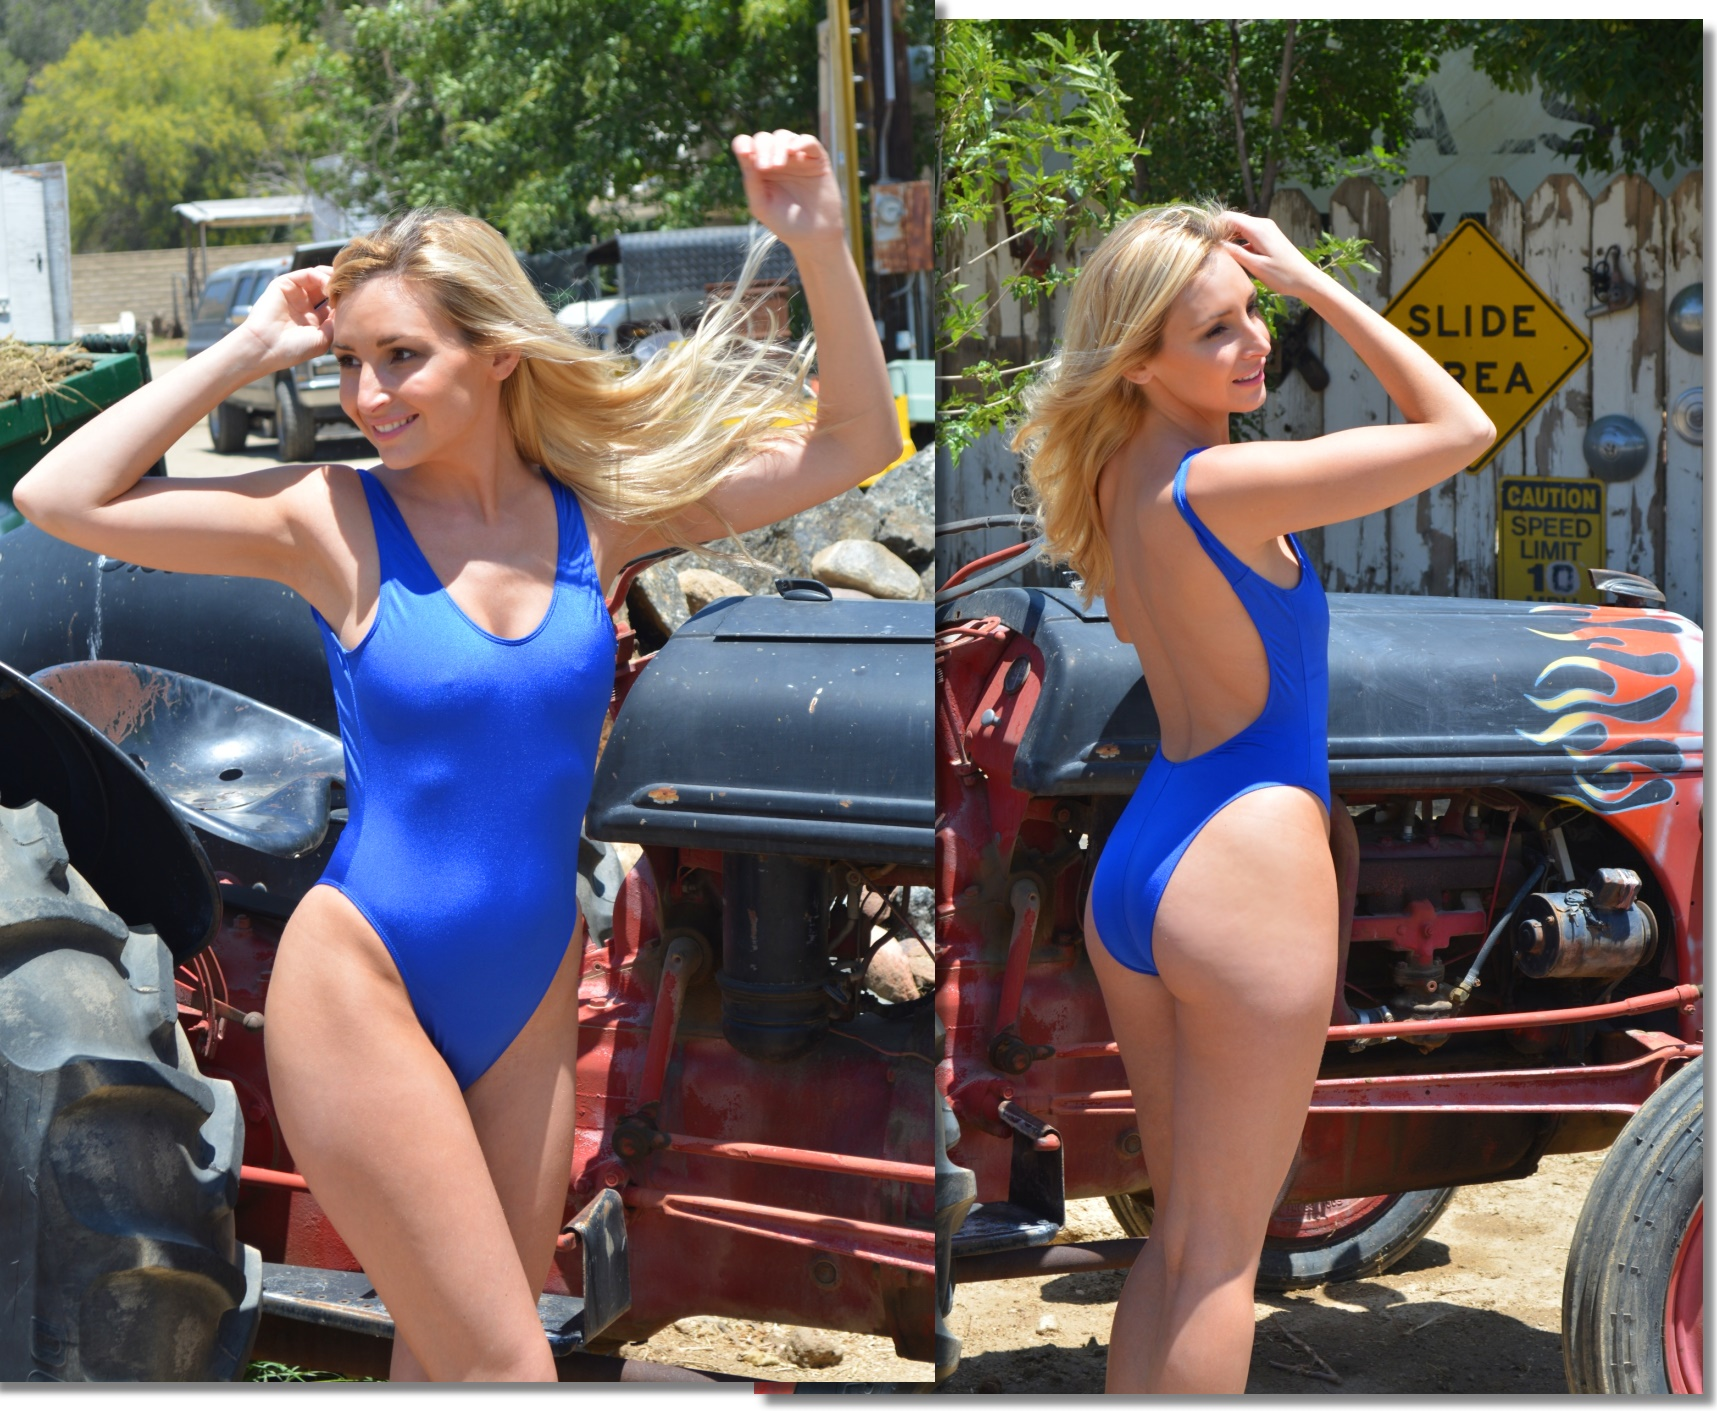 Men Who Love Black Women >> Buy Baywatch styled women's one piece swimwear | Brigitewear